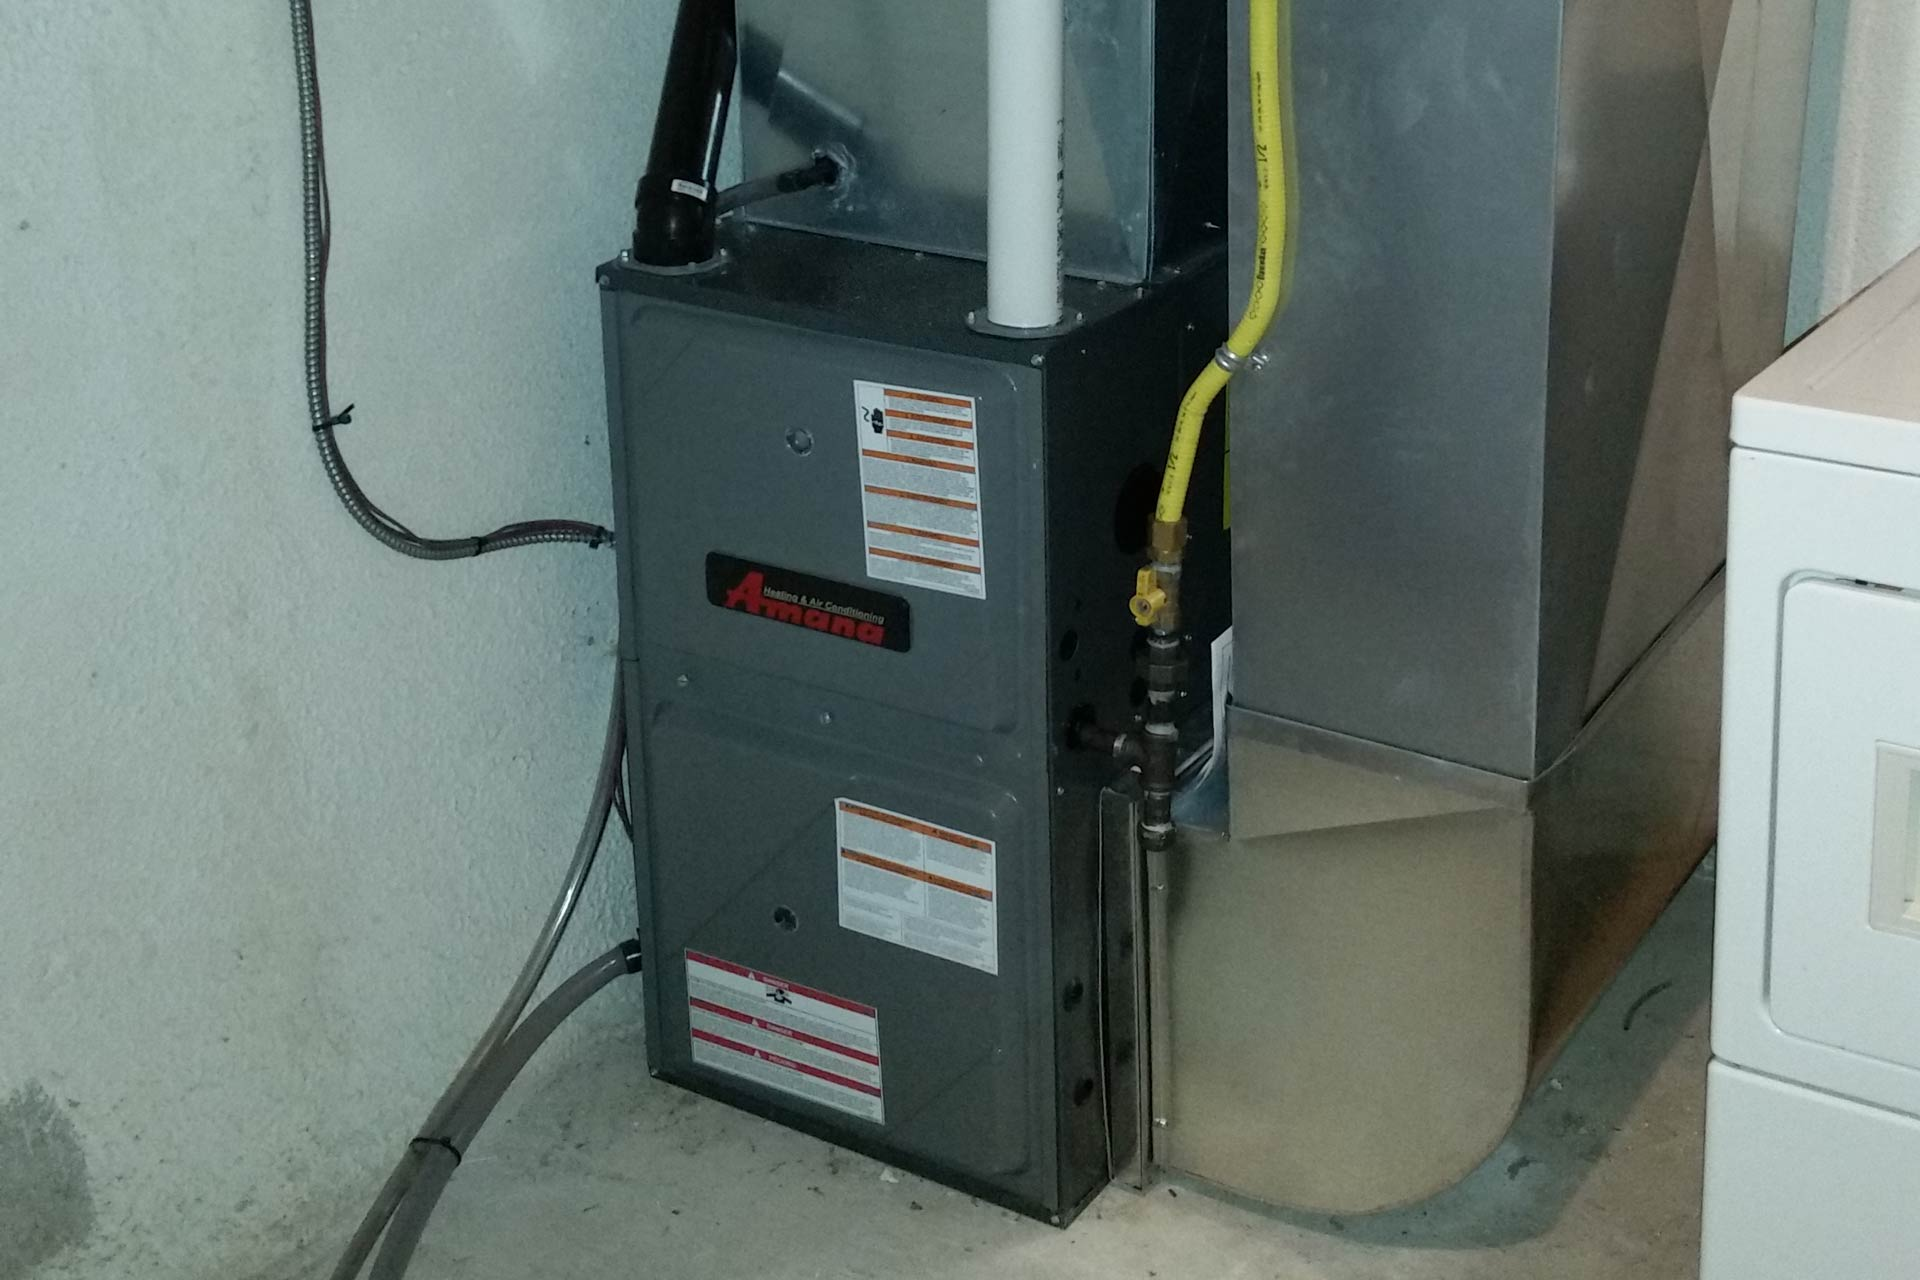 5 Things to Check if Your Furnace Stops Working